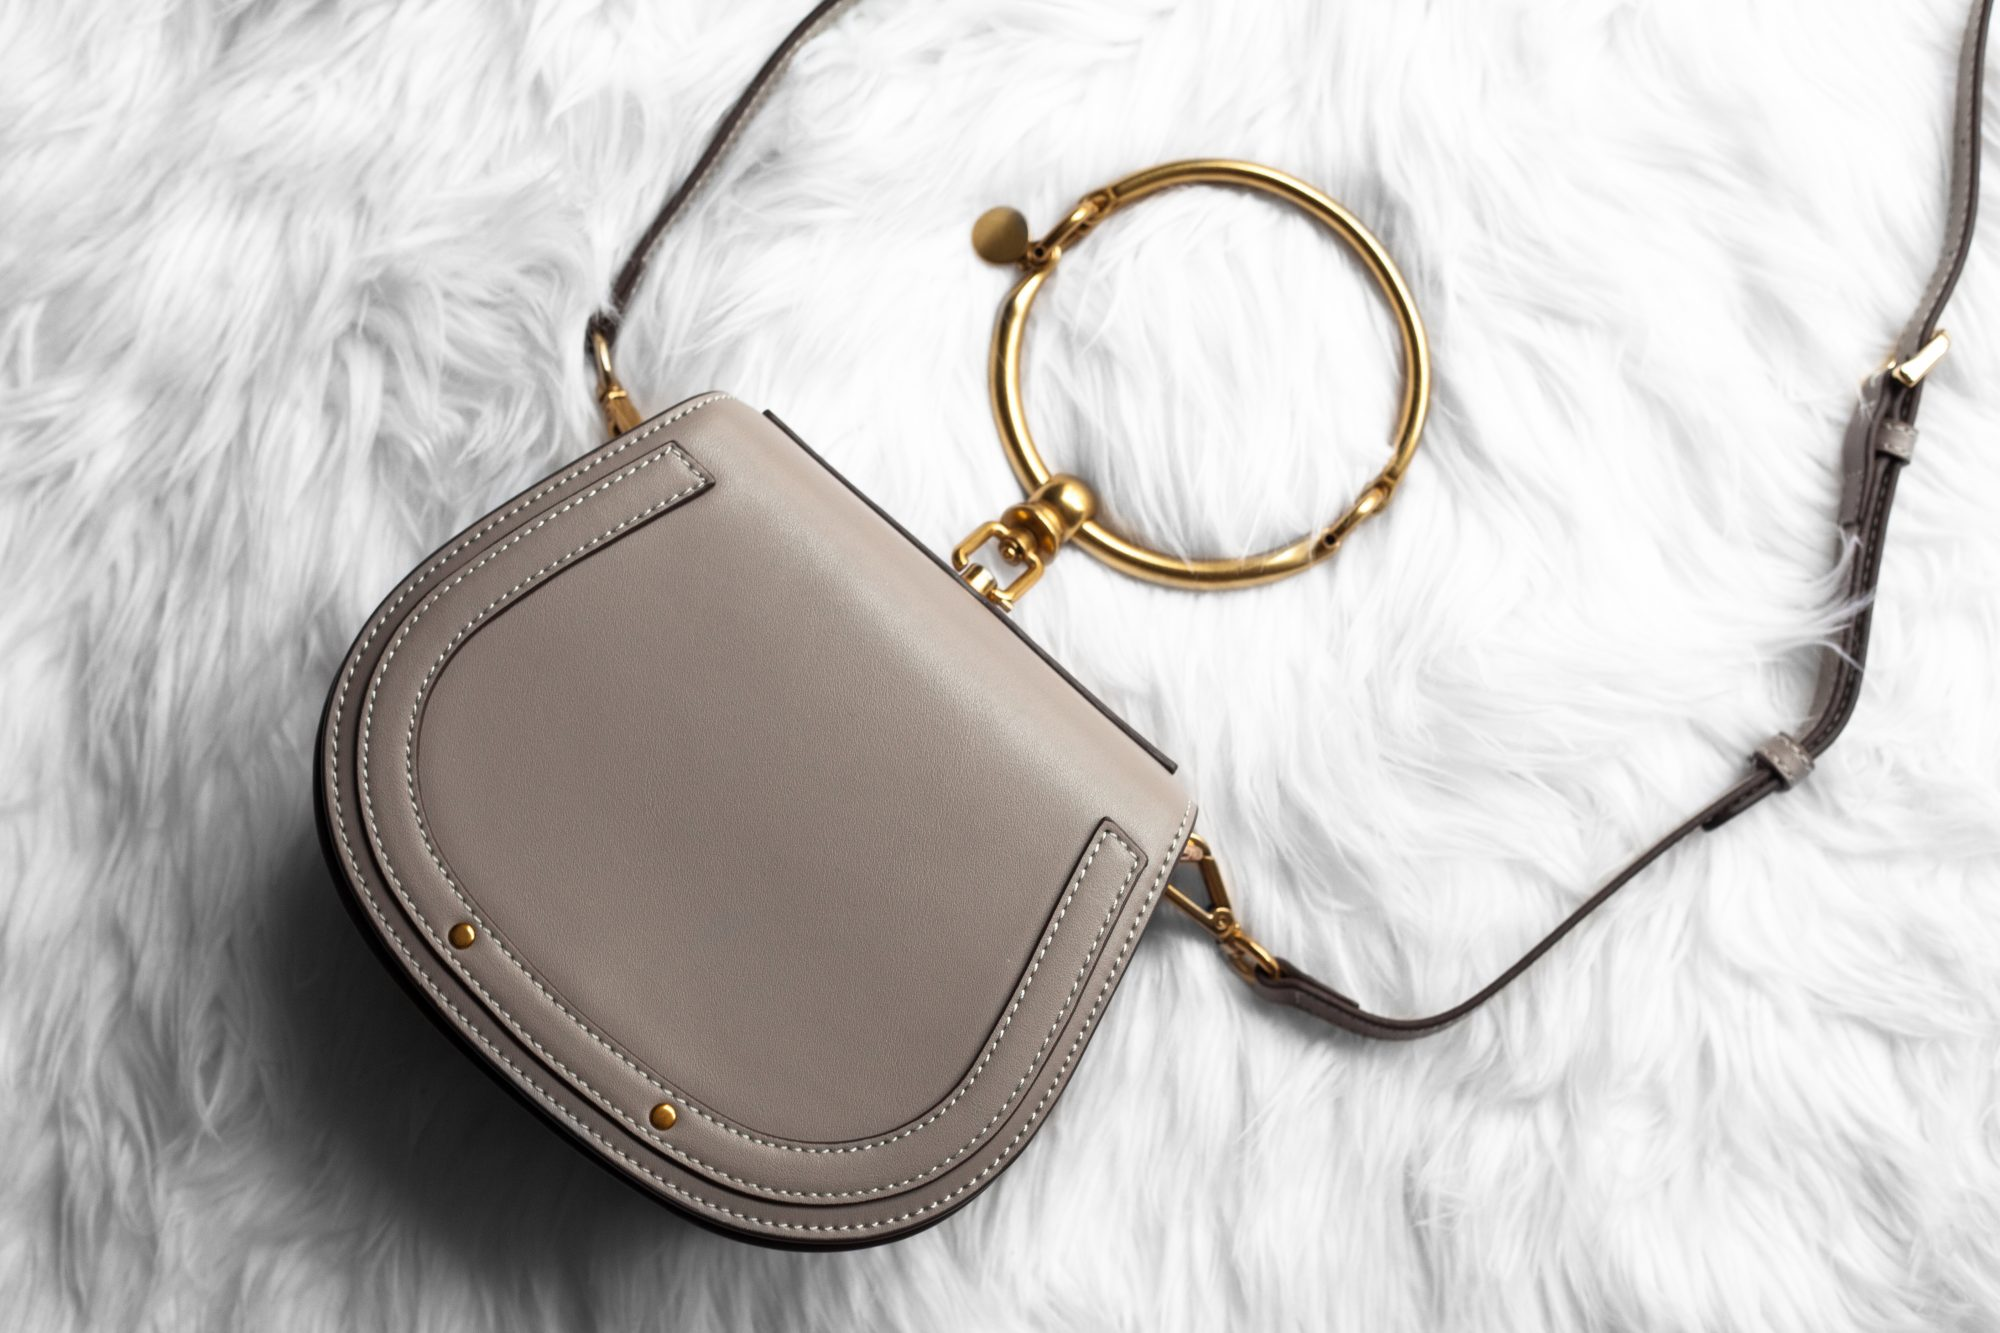 Chloe's popular small Nile bracelet handbag is priced at a hefty $1,550. I've found this gorgeous genuine leather designer dupe for just $40.43! Find out where to buy here. - www.theballeronabudget.com